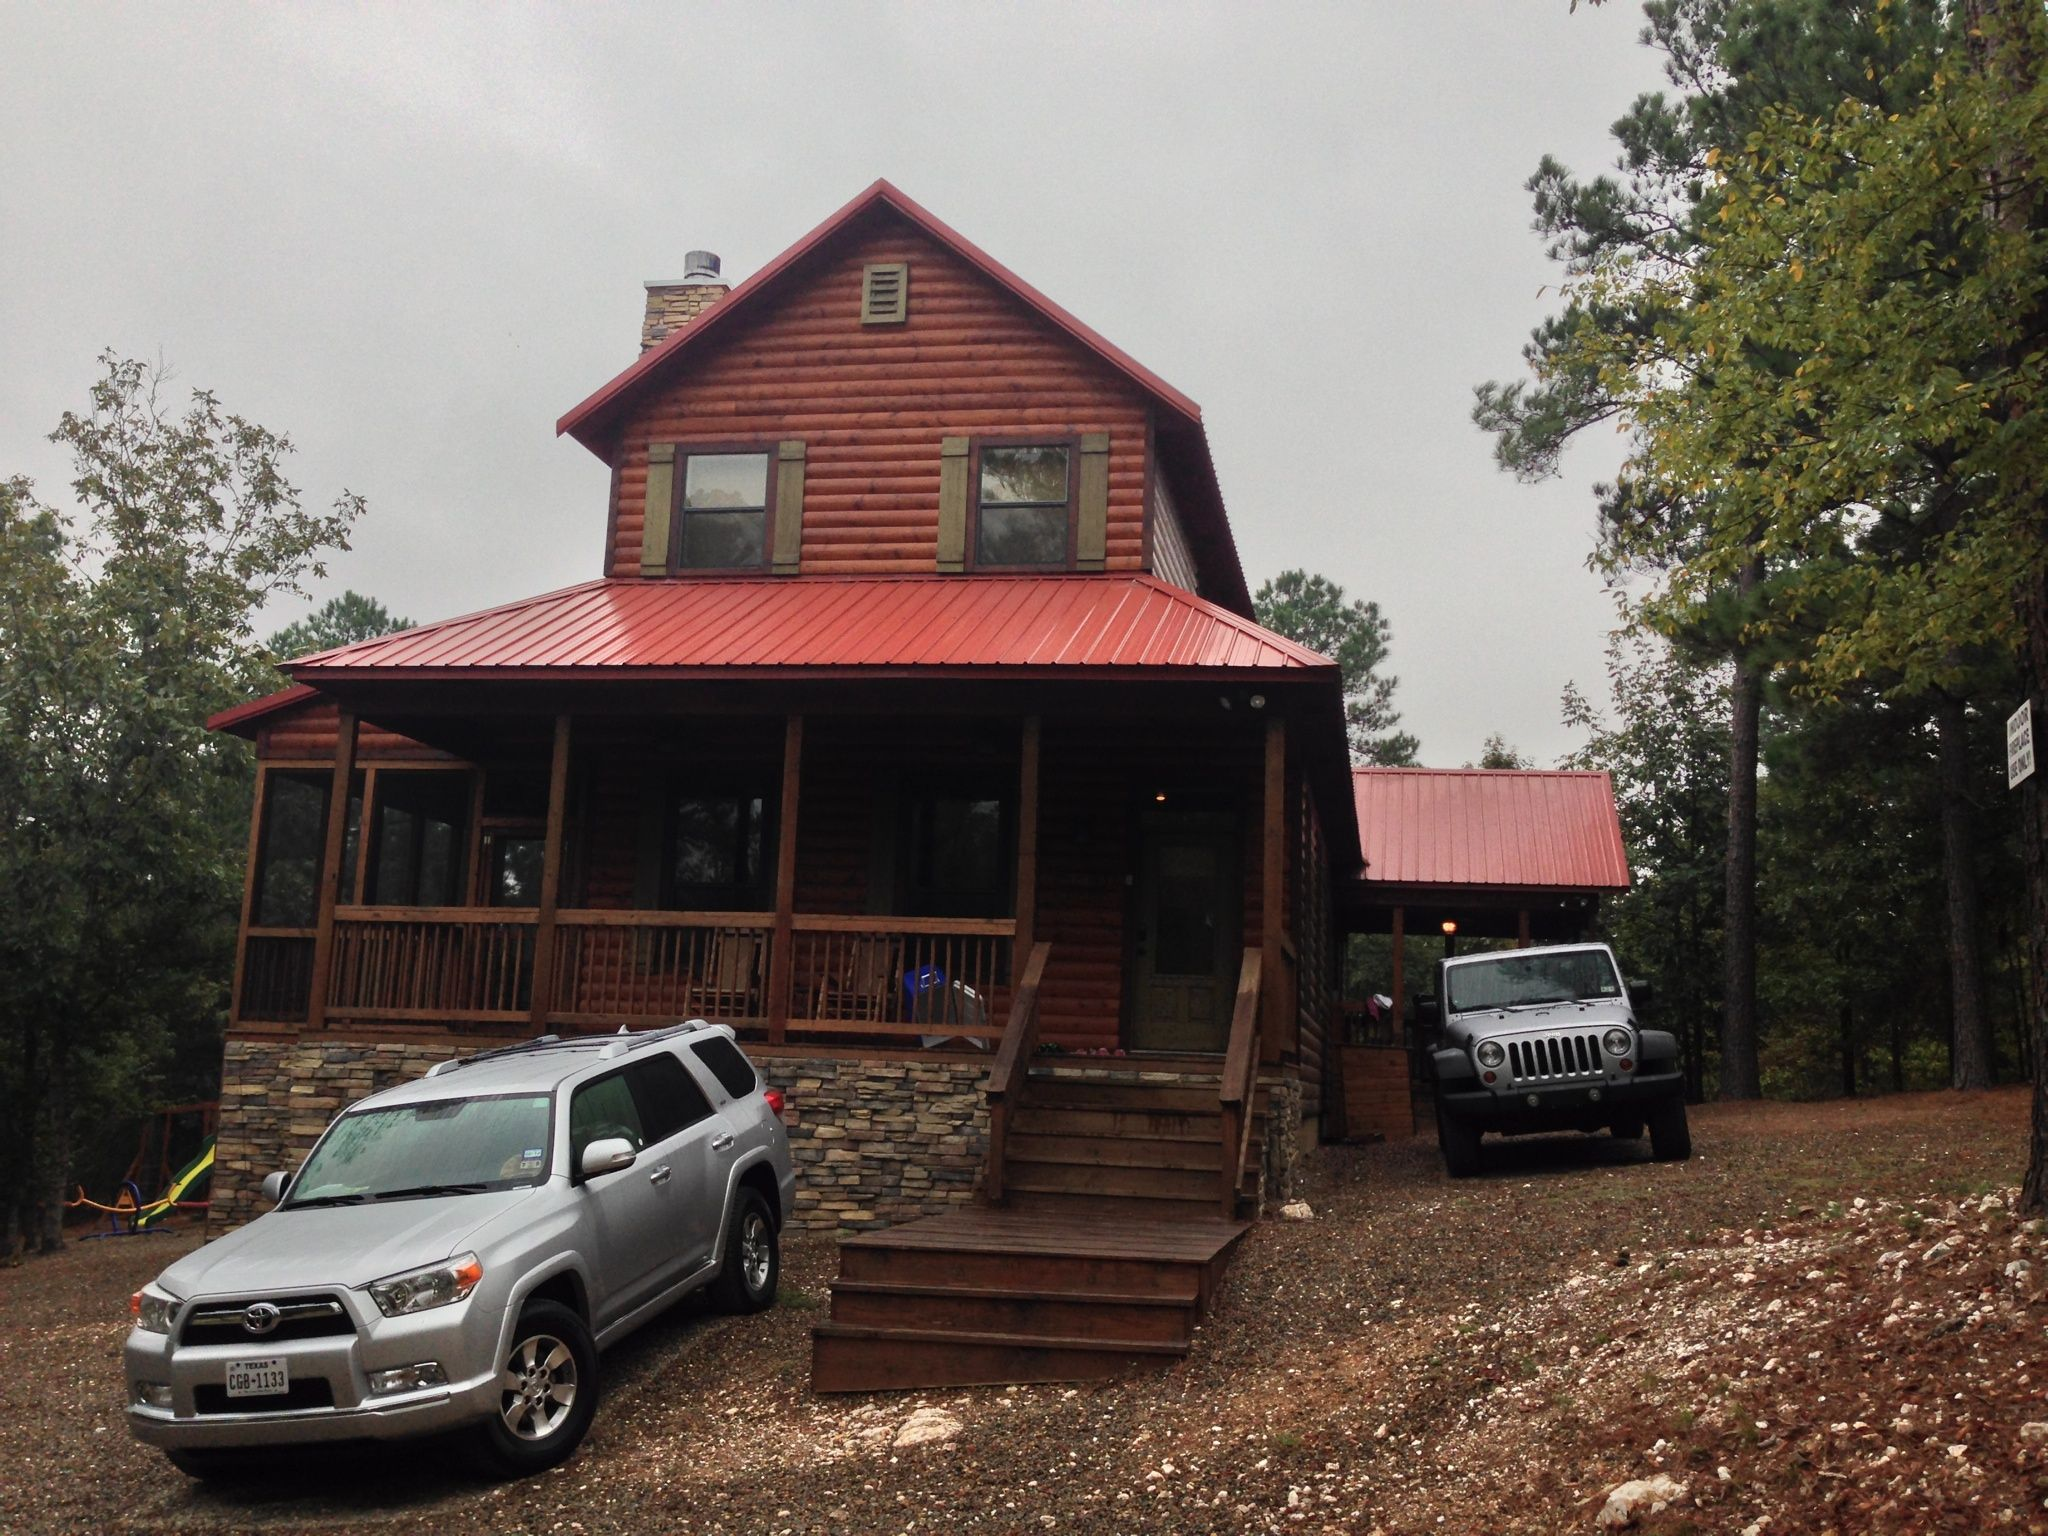 Turtle Ridge Log Cabin In Broken Bow, OK And Our Cars